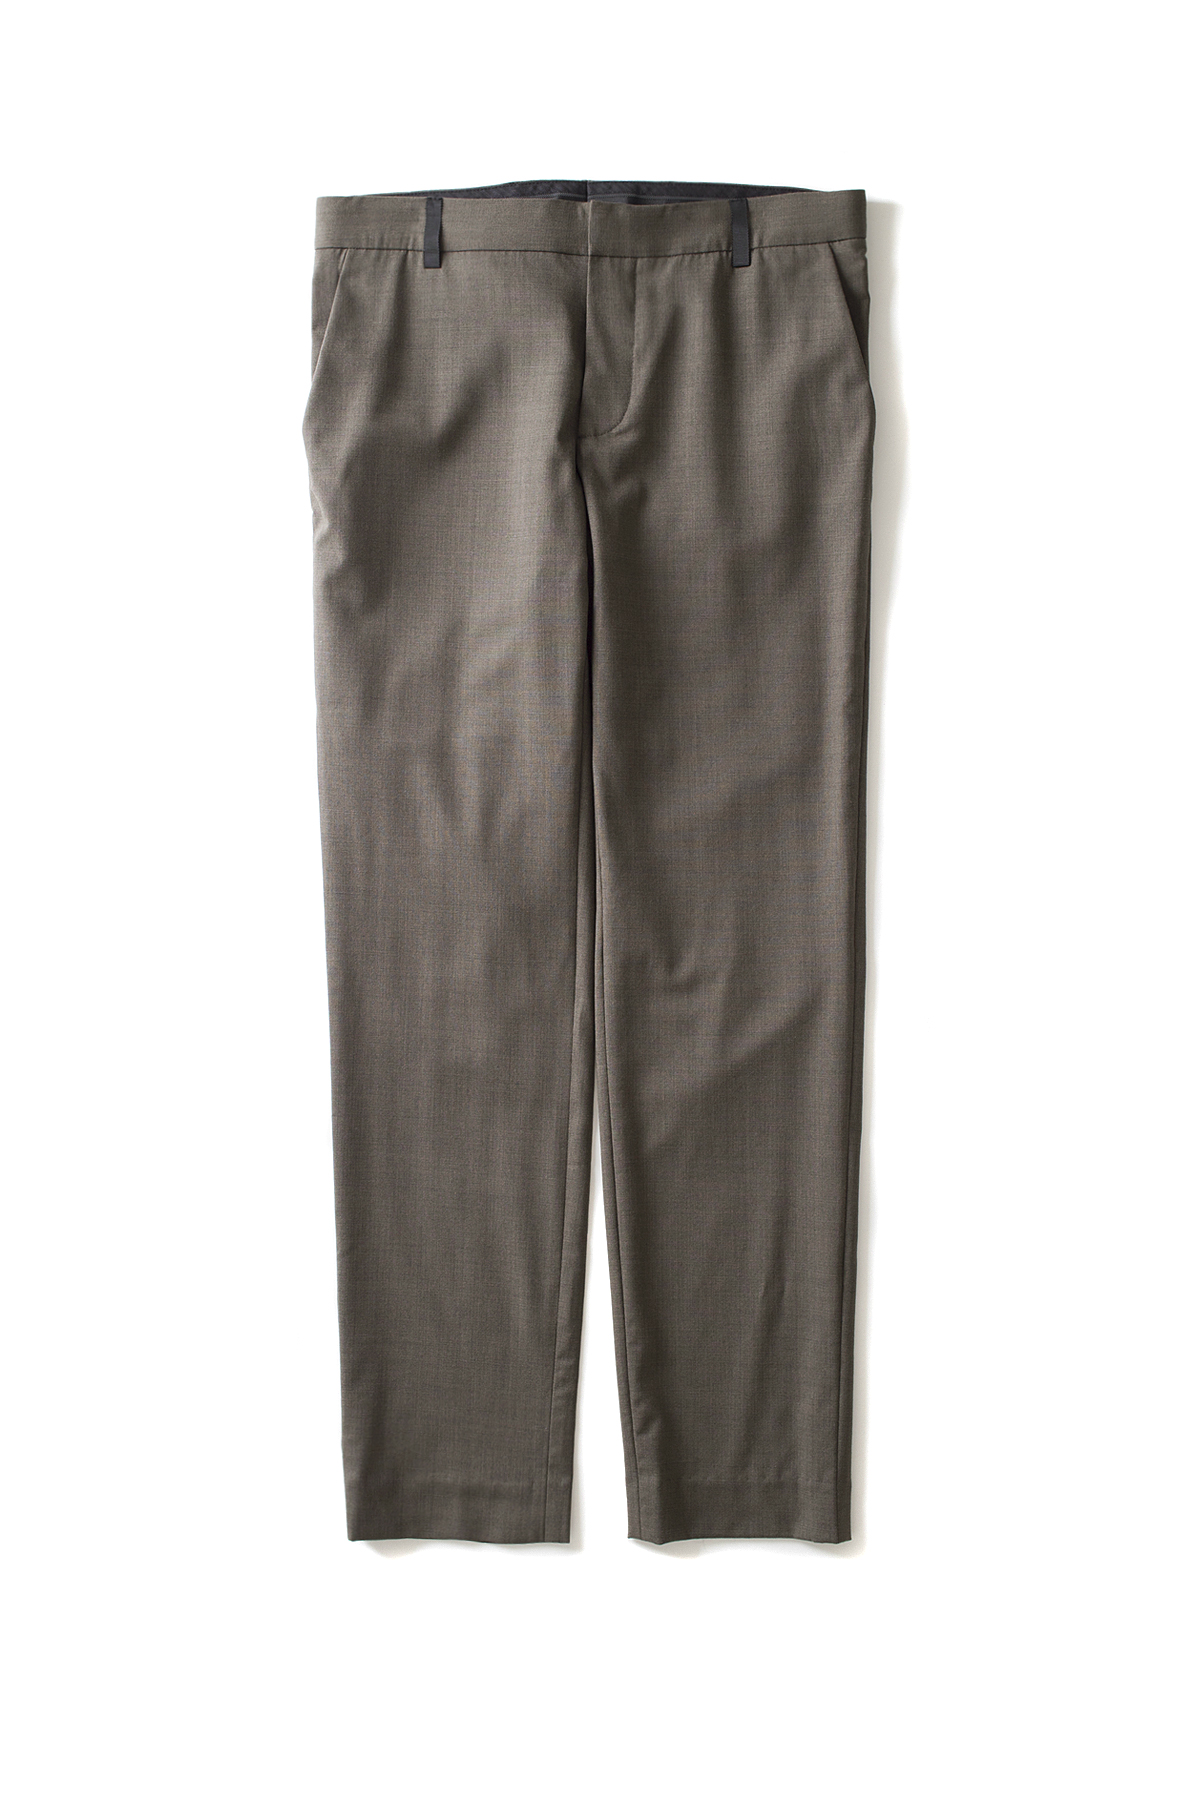 Peir Wu : Slim Tailored Trousers (Melange Green)